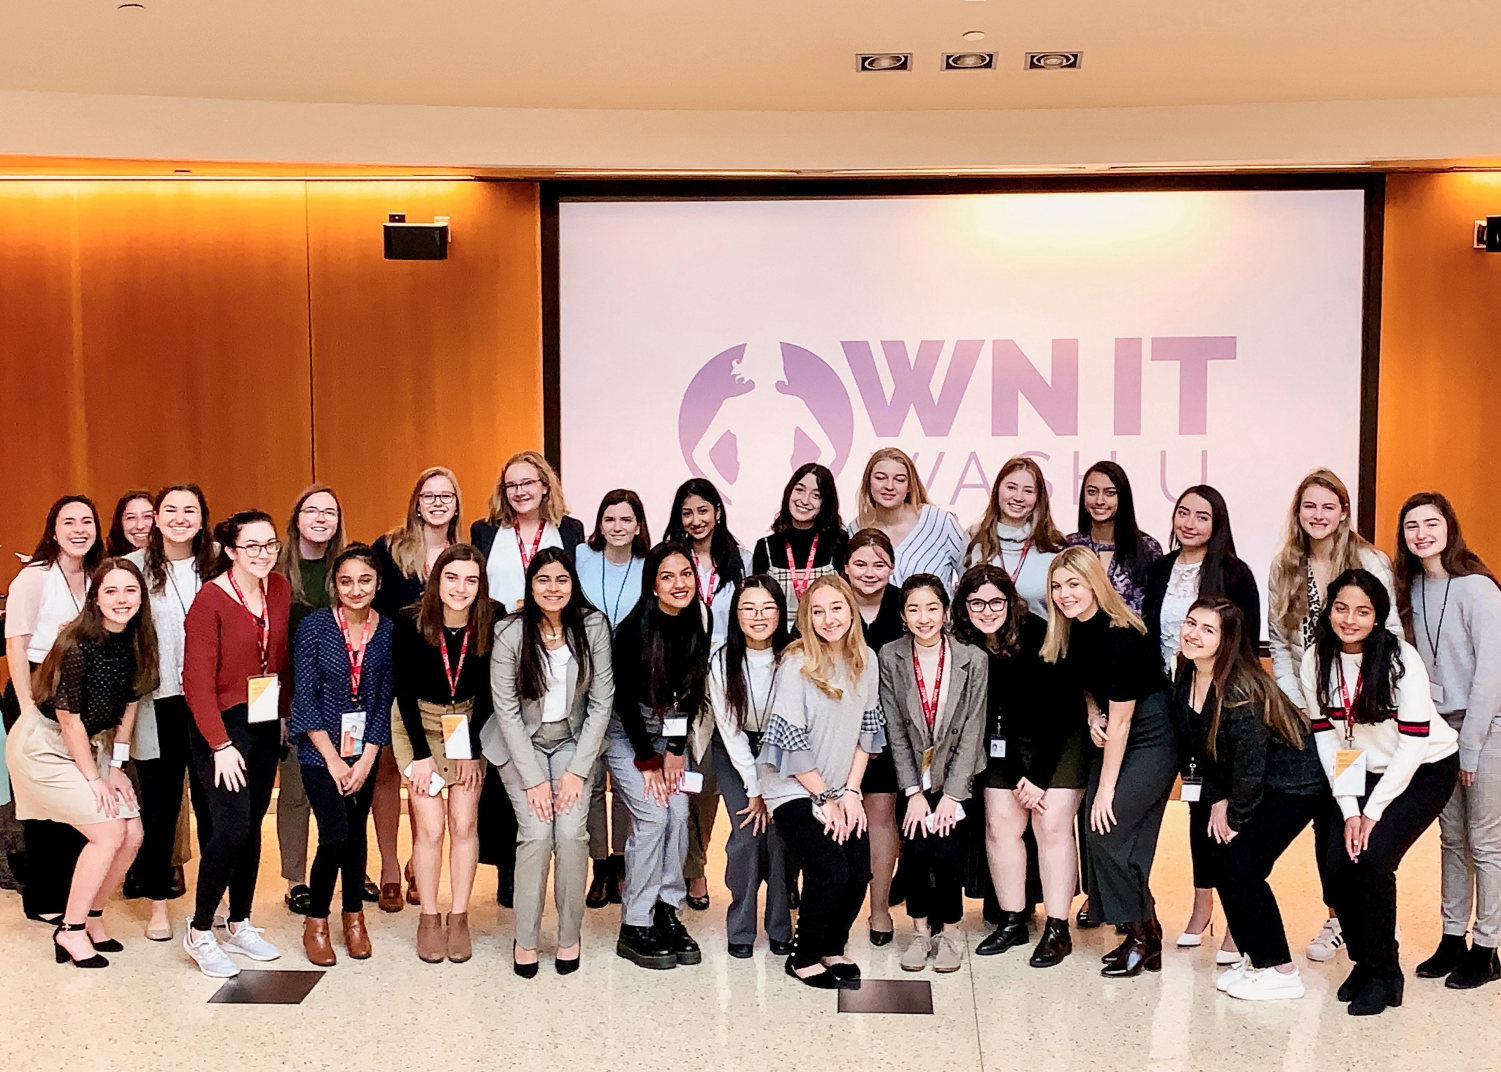 """Marks and Crawford pose for a group photo along with other students that attended the Olin Future Women In Business weekend. Before attending, Crawford planned to go into the medical field, but now feels suited for a business career. """"I wasn't sure if I wanted to go into business. It [the event] opened my eyes, and this is something I'm really interested in now,"""" Crawford said."""